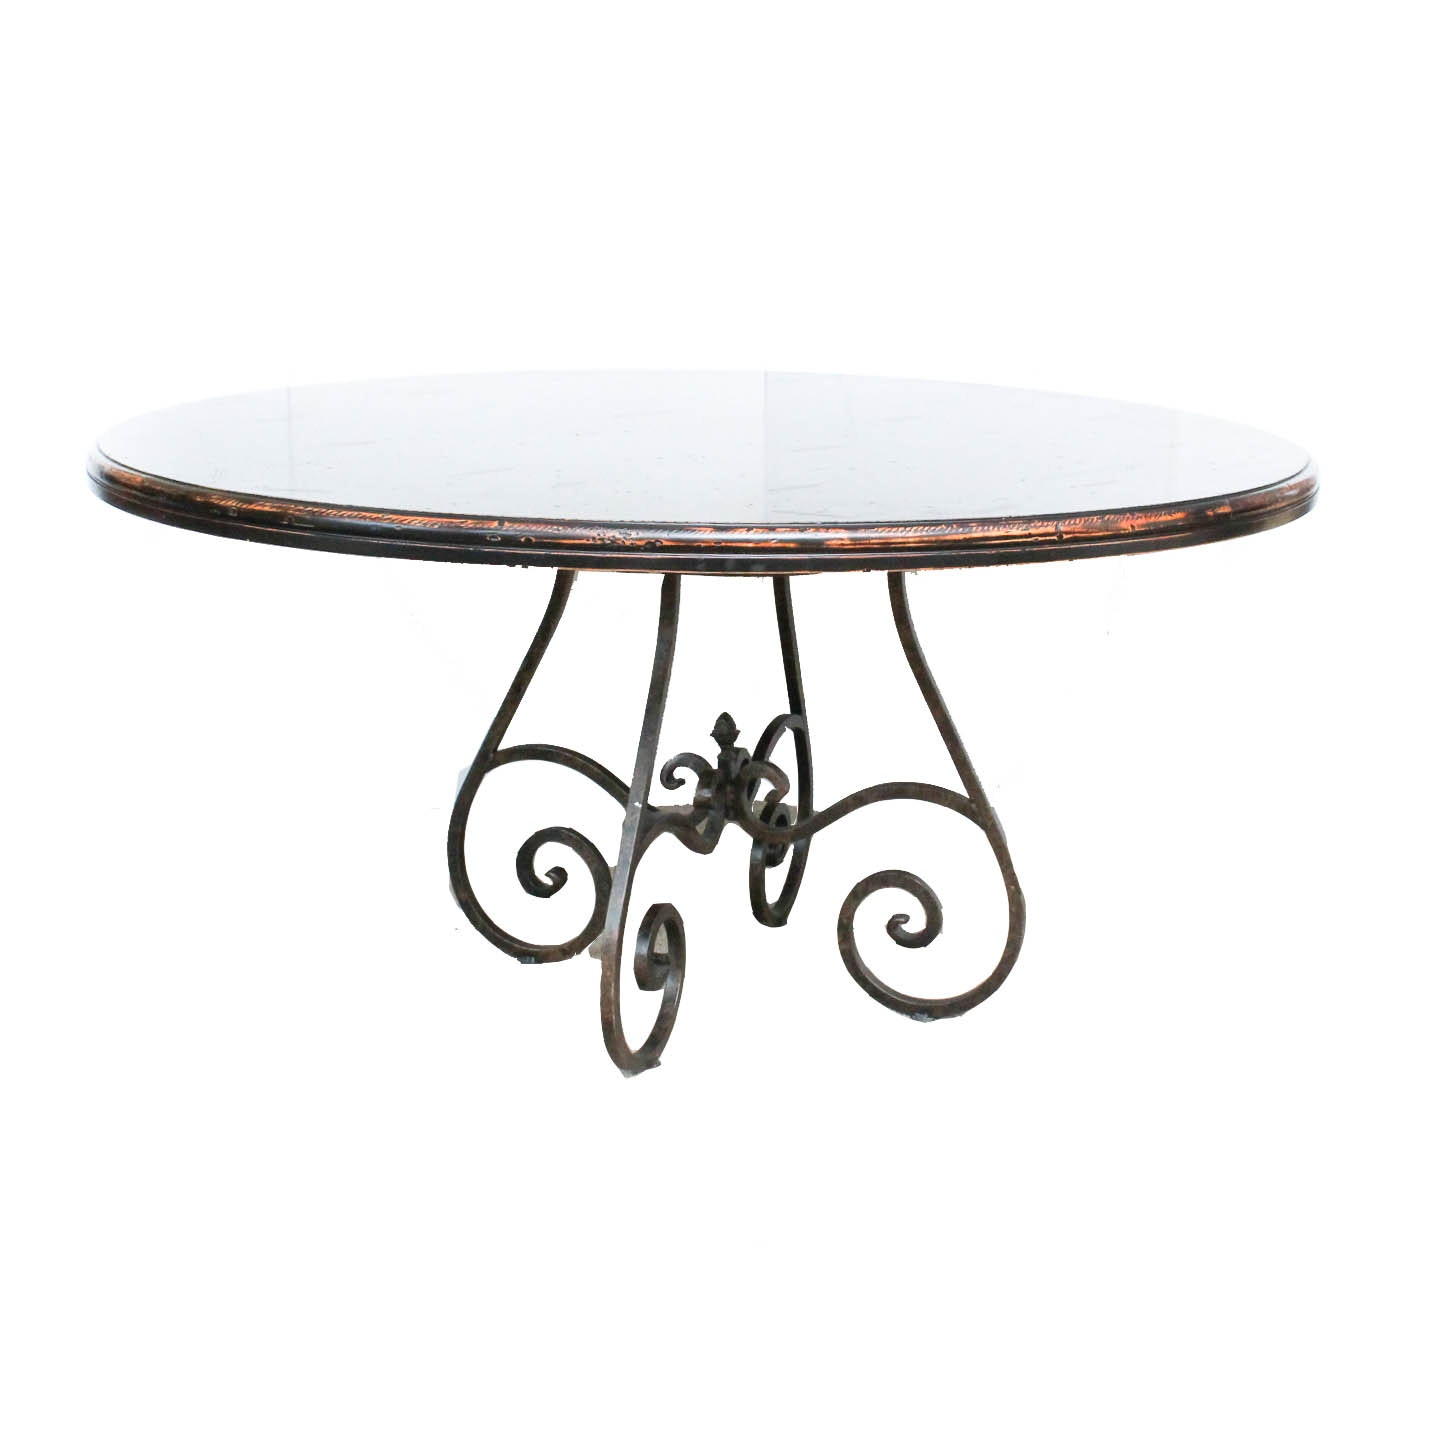 Distressed Wood Dining Table with Metal Base